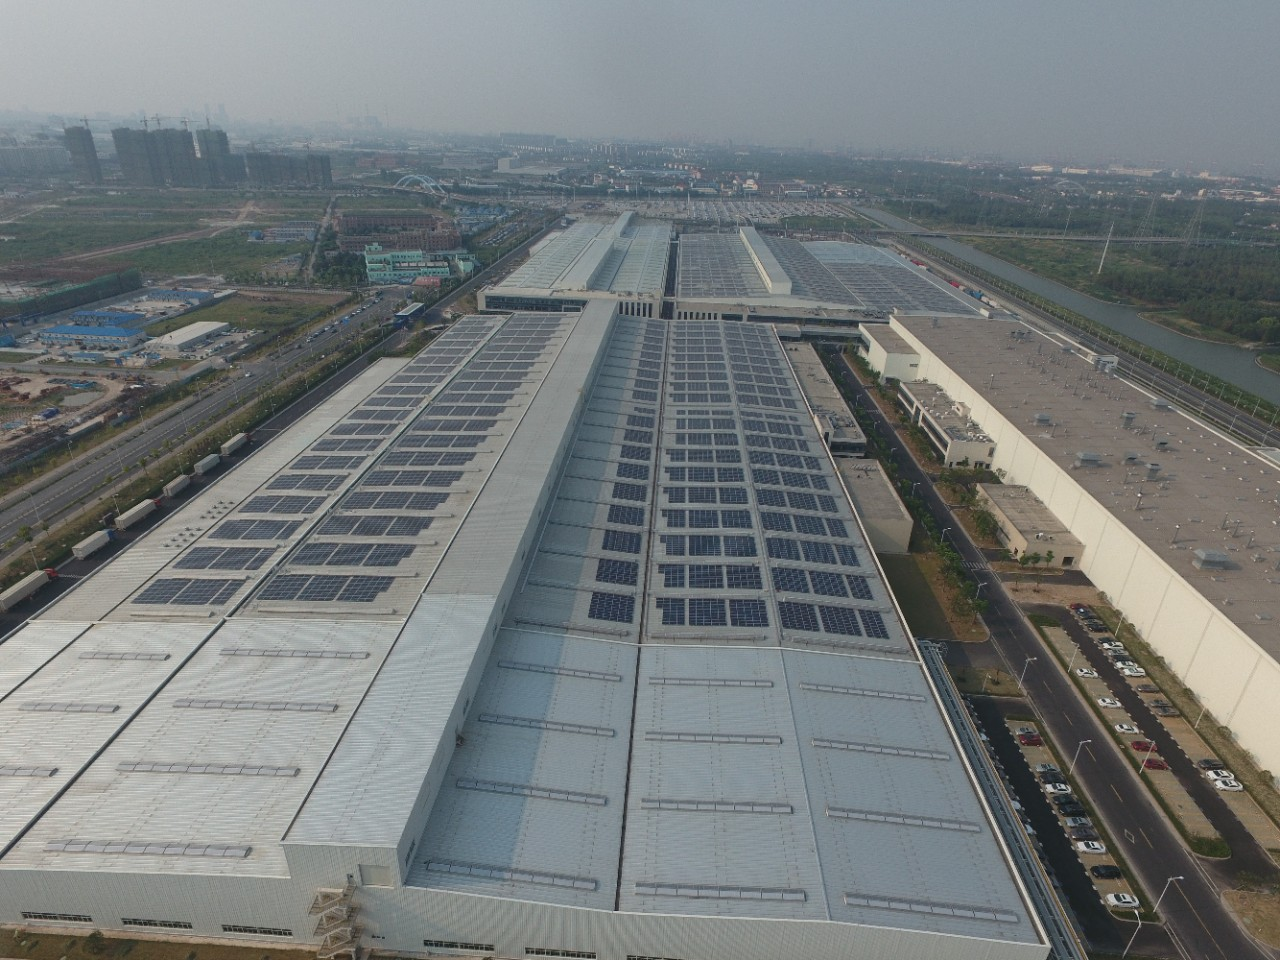 The Jinqiao Cadillac assembly plant in Shanghai (above) will feature 10 megawatts of rooftop solar arrays.